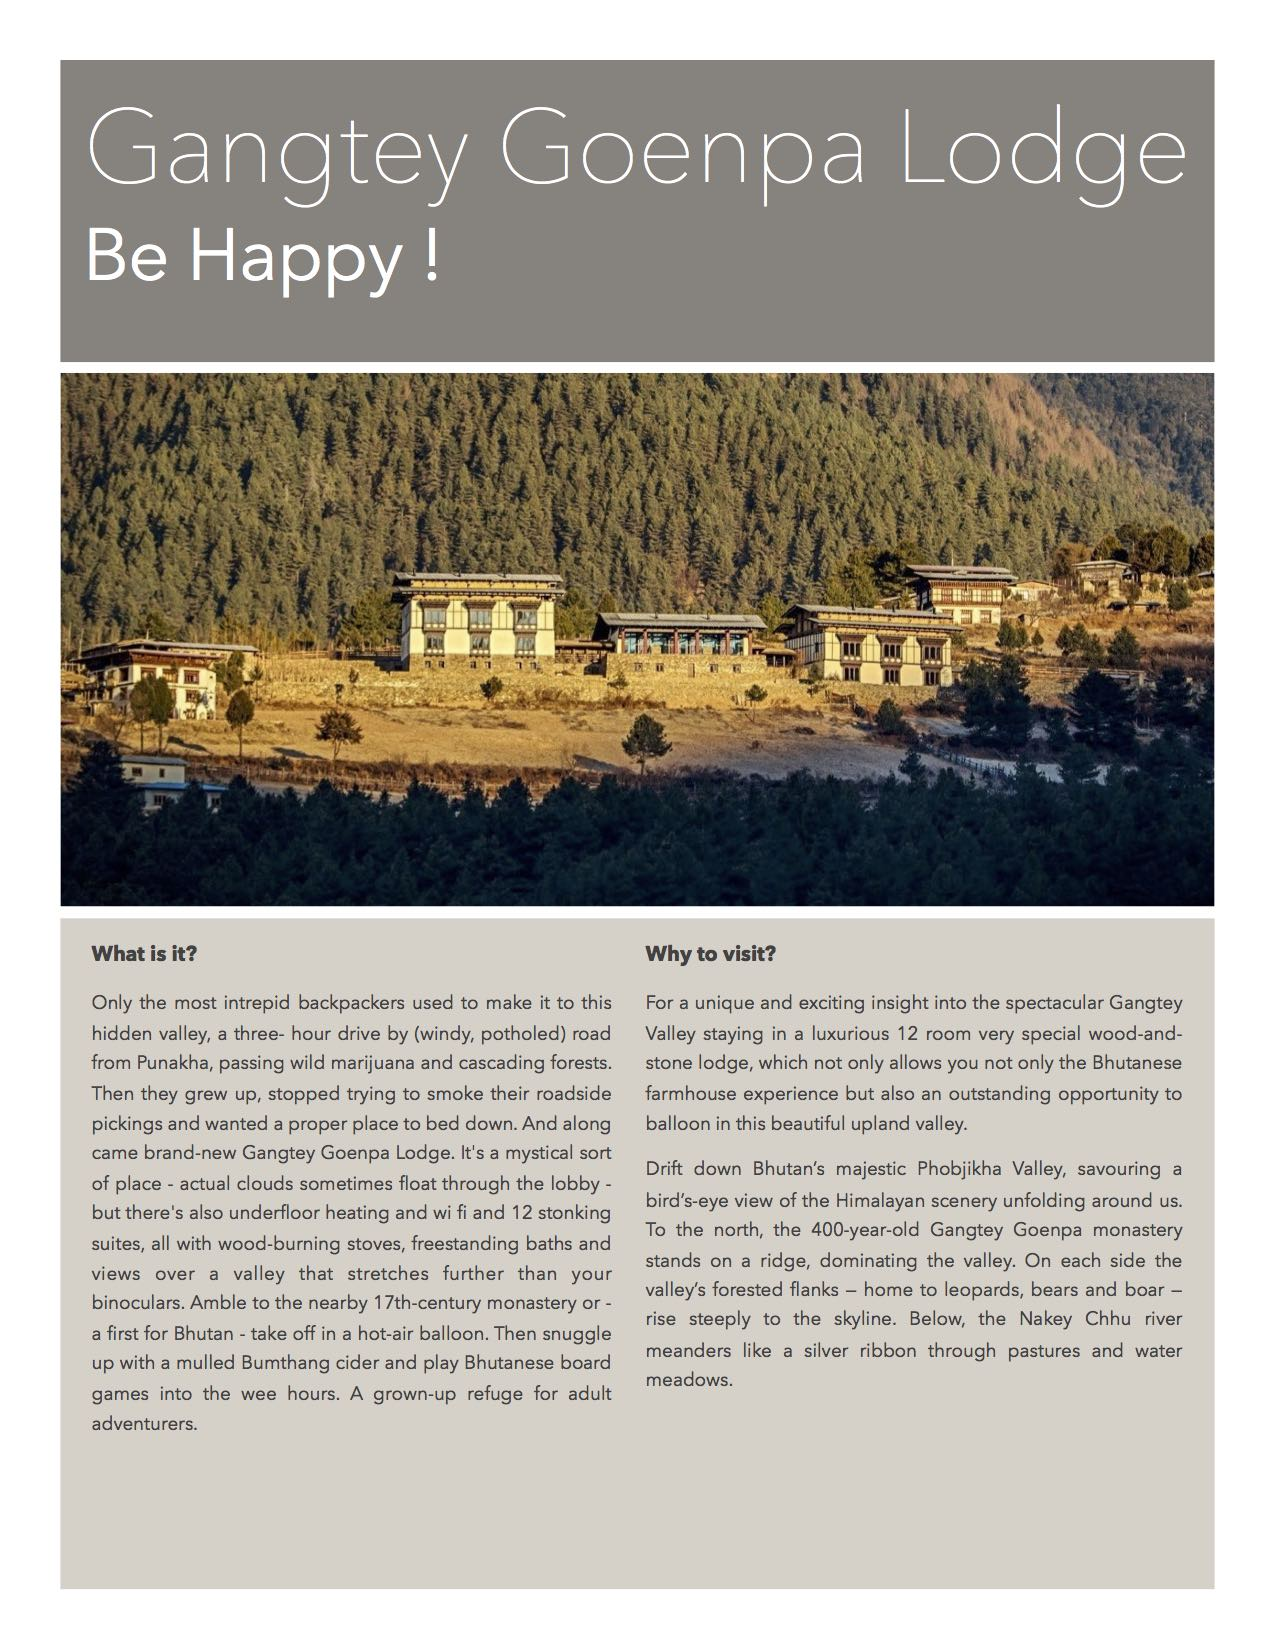 GGP - Your stay in Bhutan